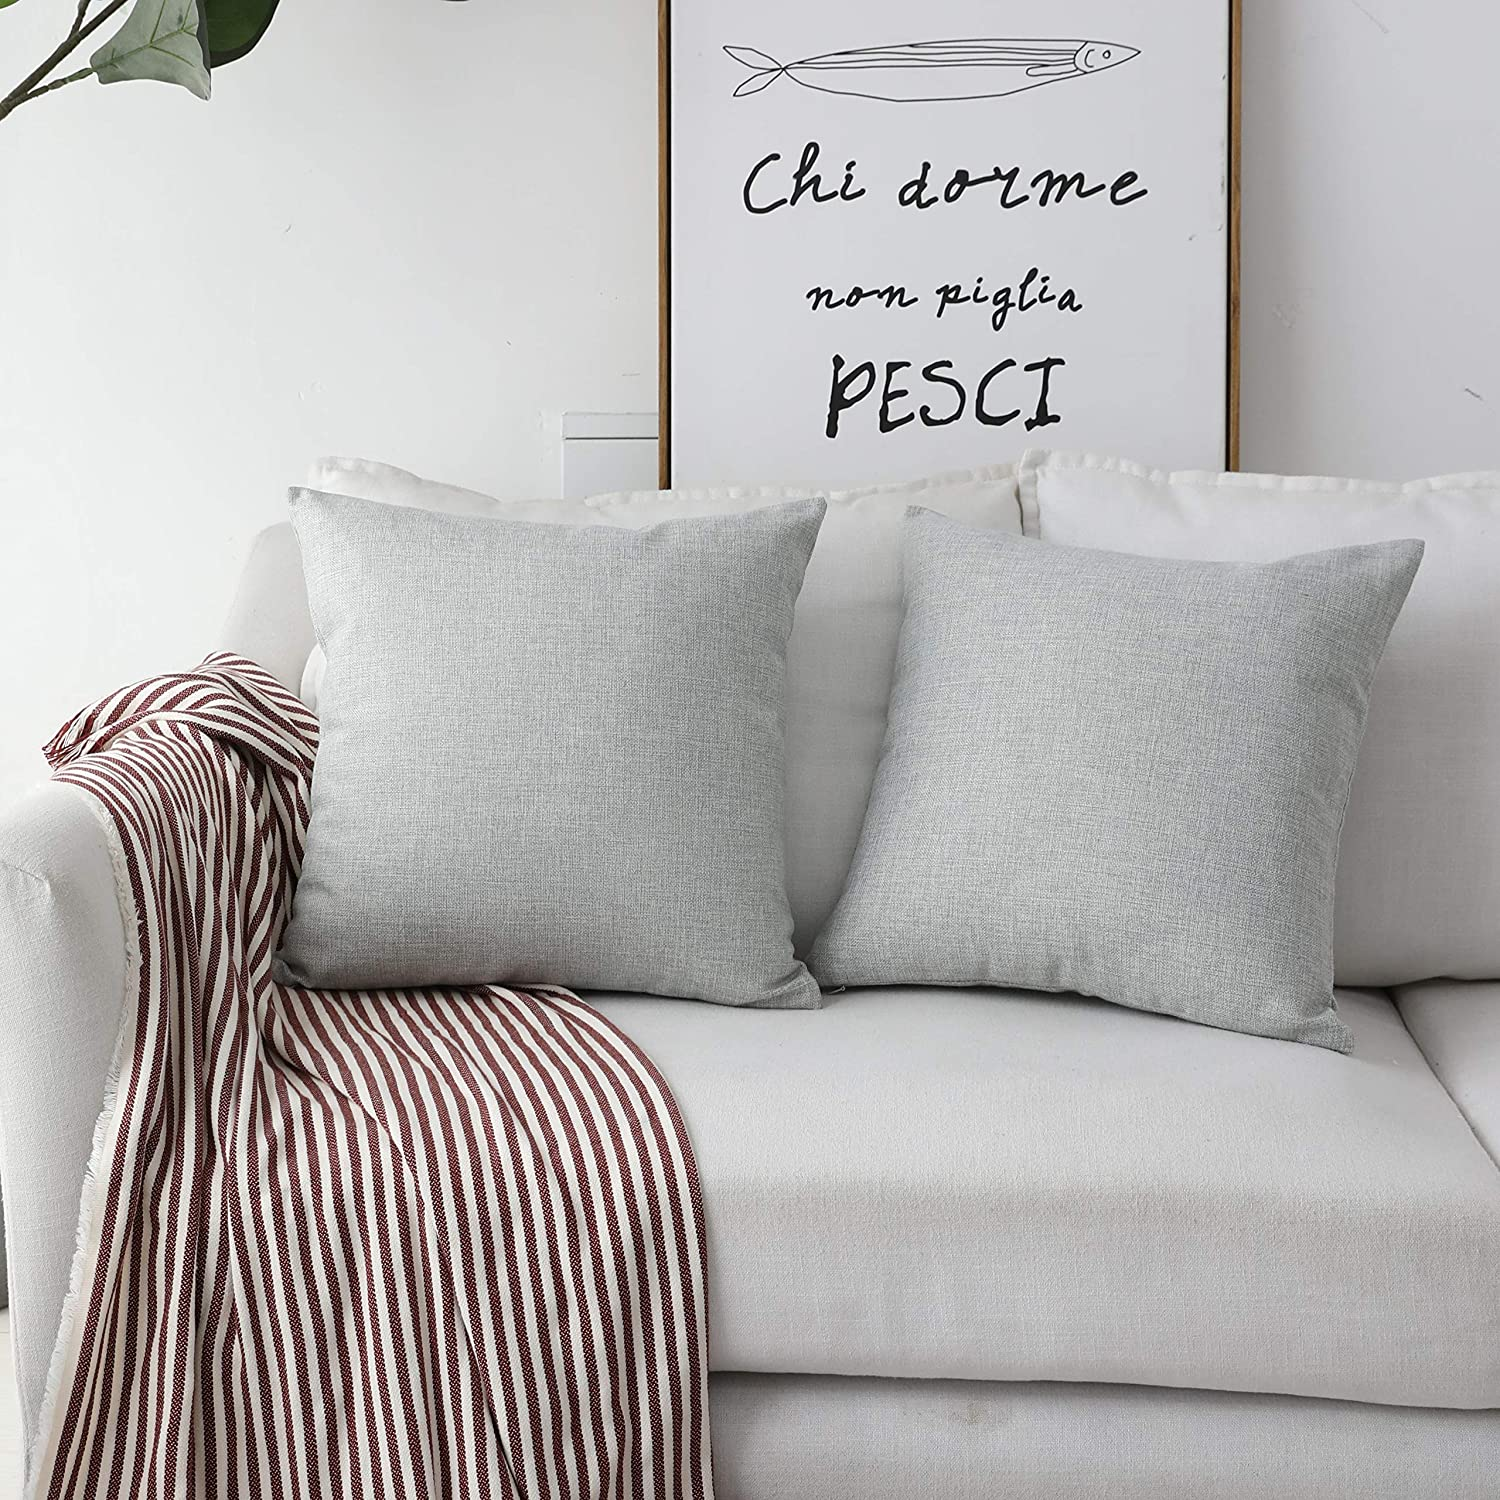 Home Brilliant Thanksgiving Throw Pillows Linen Euro Sham Decorative Pillow Cover for Couch, 24x24 inches(60x60cm), 2 Pack, Light Grey